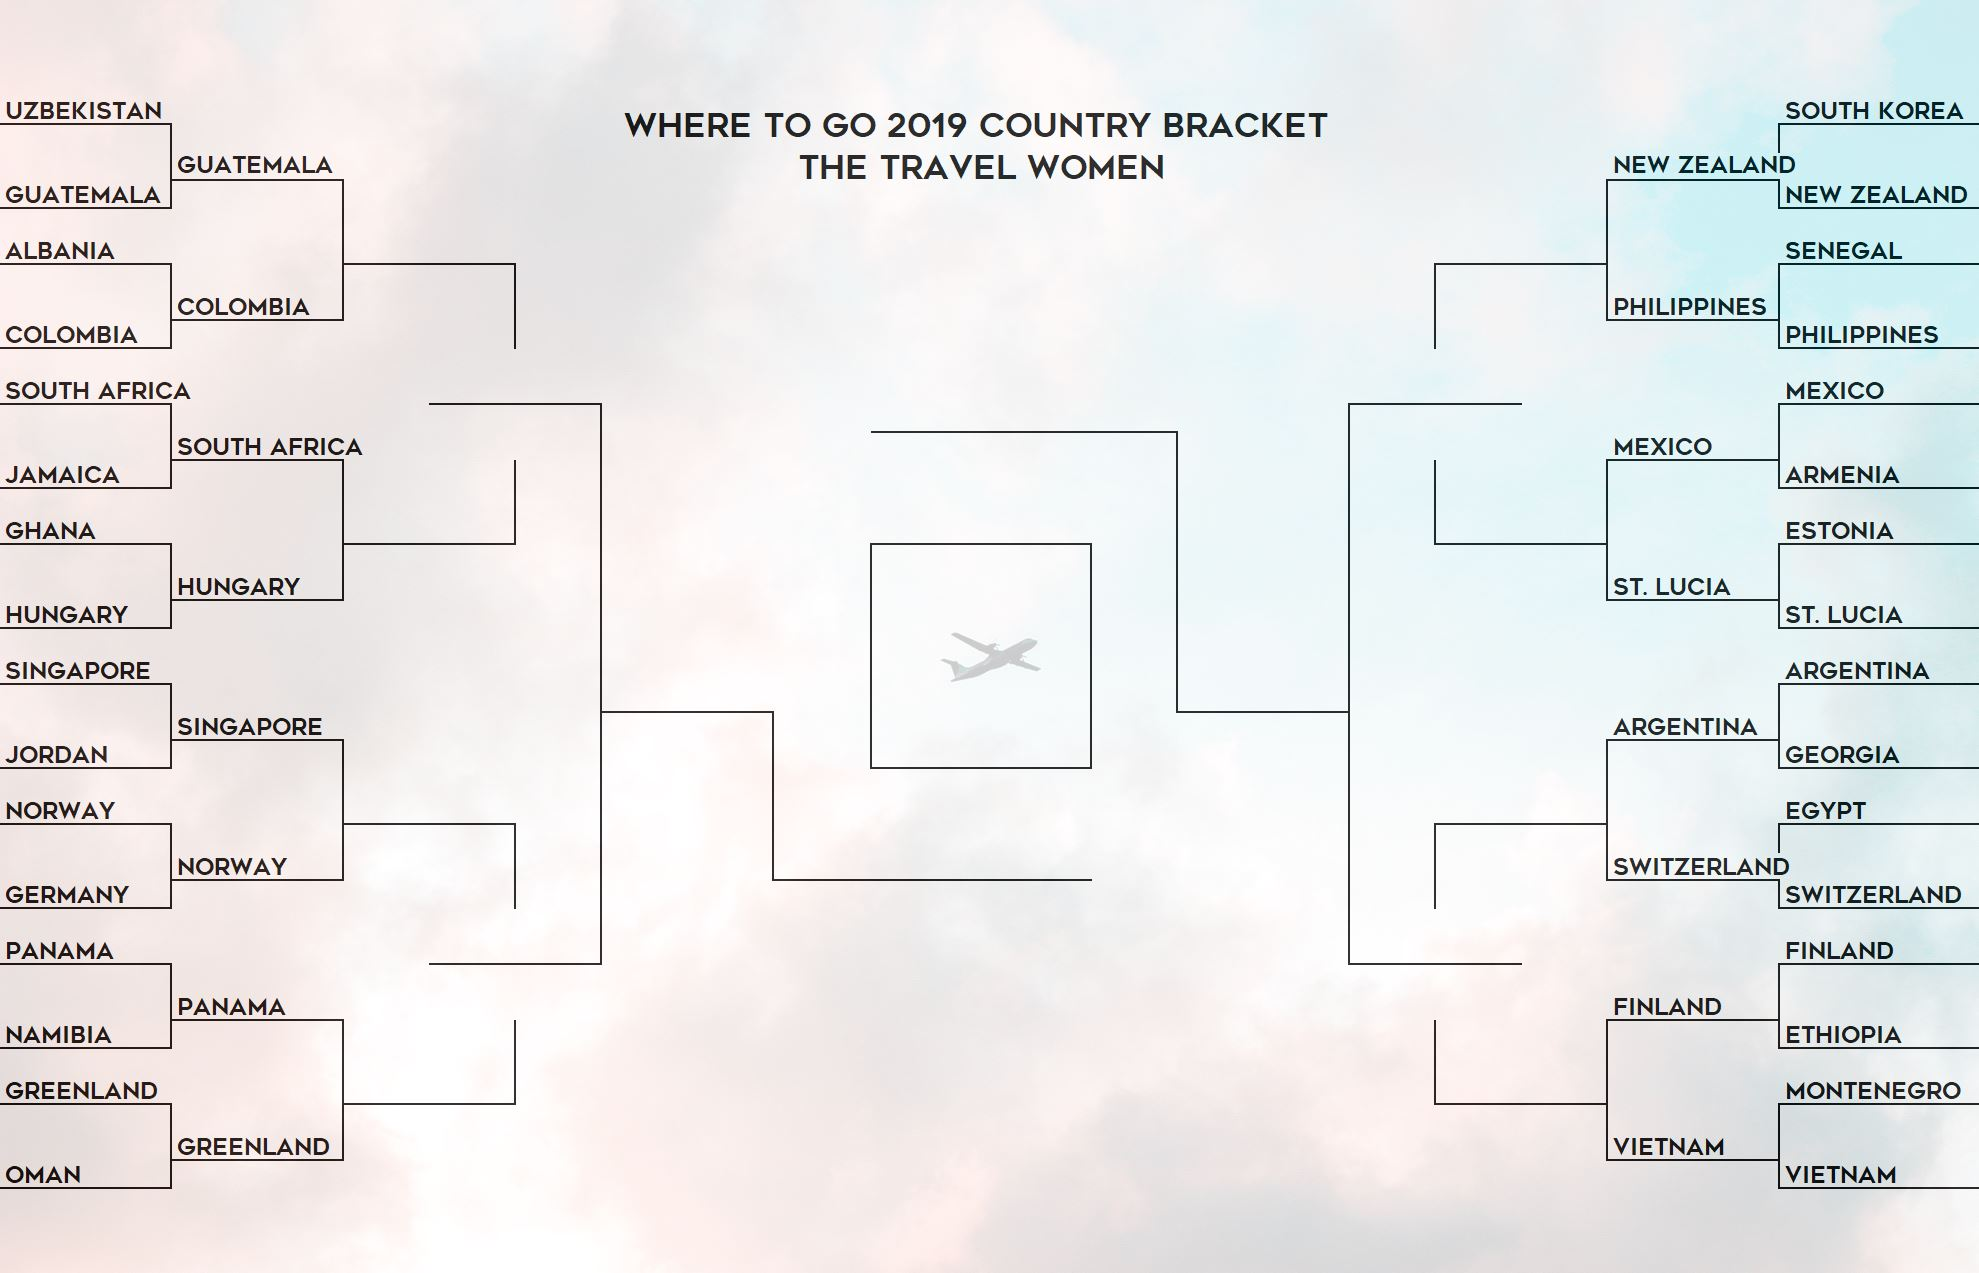 Where to go country bracket 2019 round 2